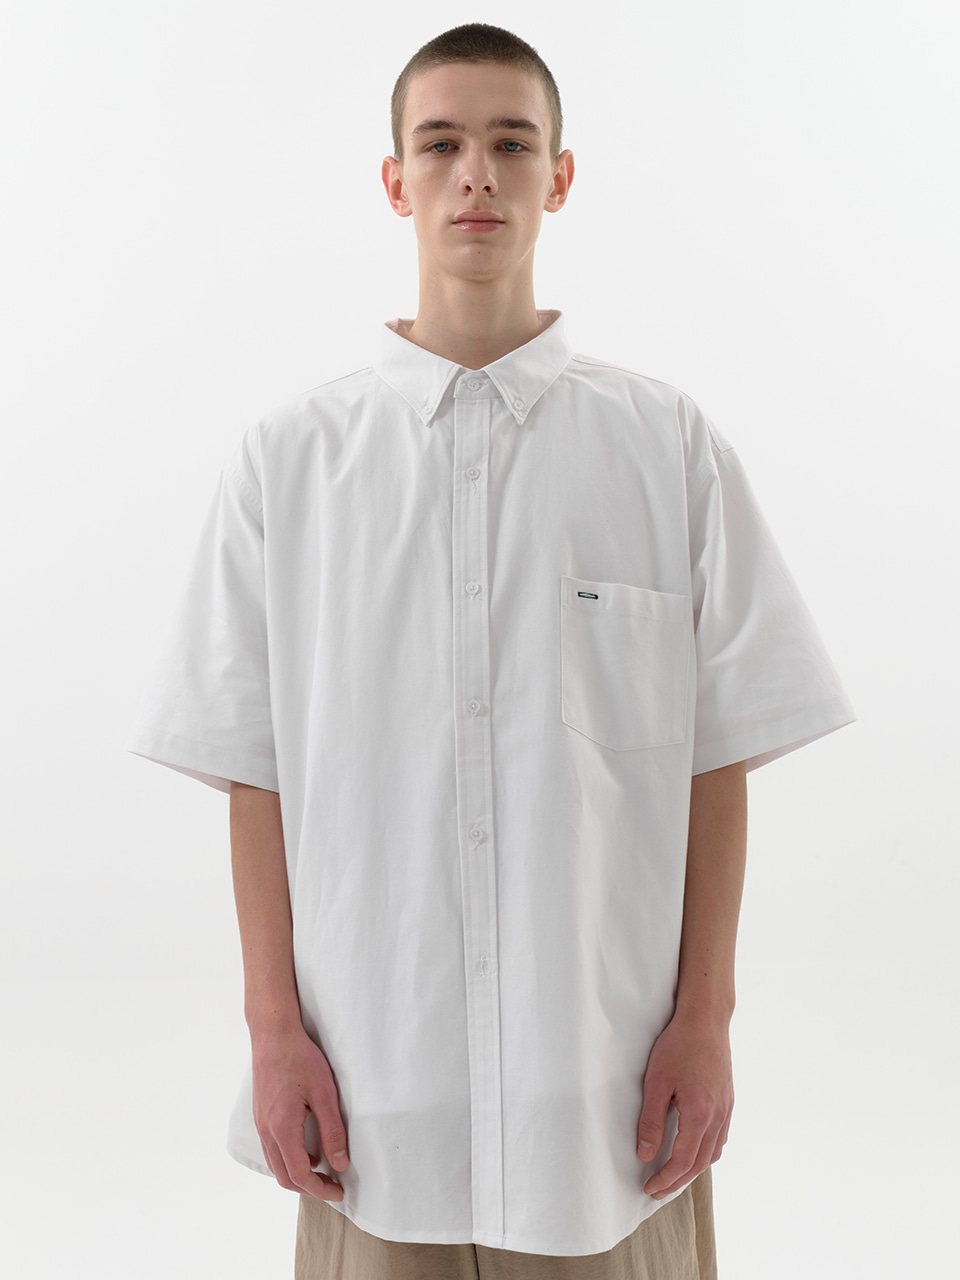 SOUNDSLIFE - [5/12(수) 예약배송] Short Sleeve Shirt Big Boy Fit White